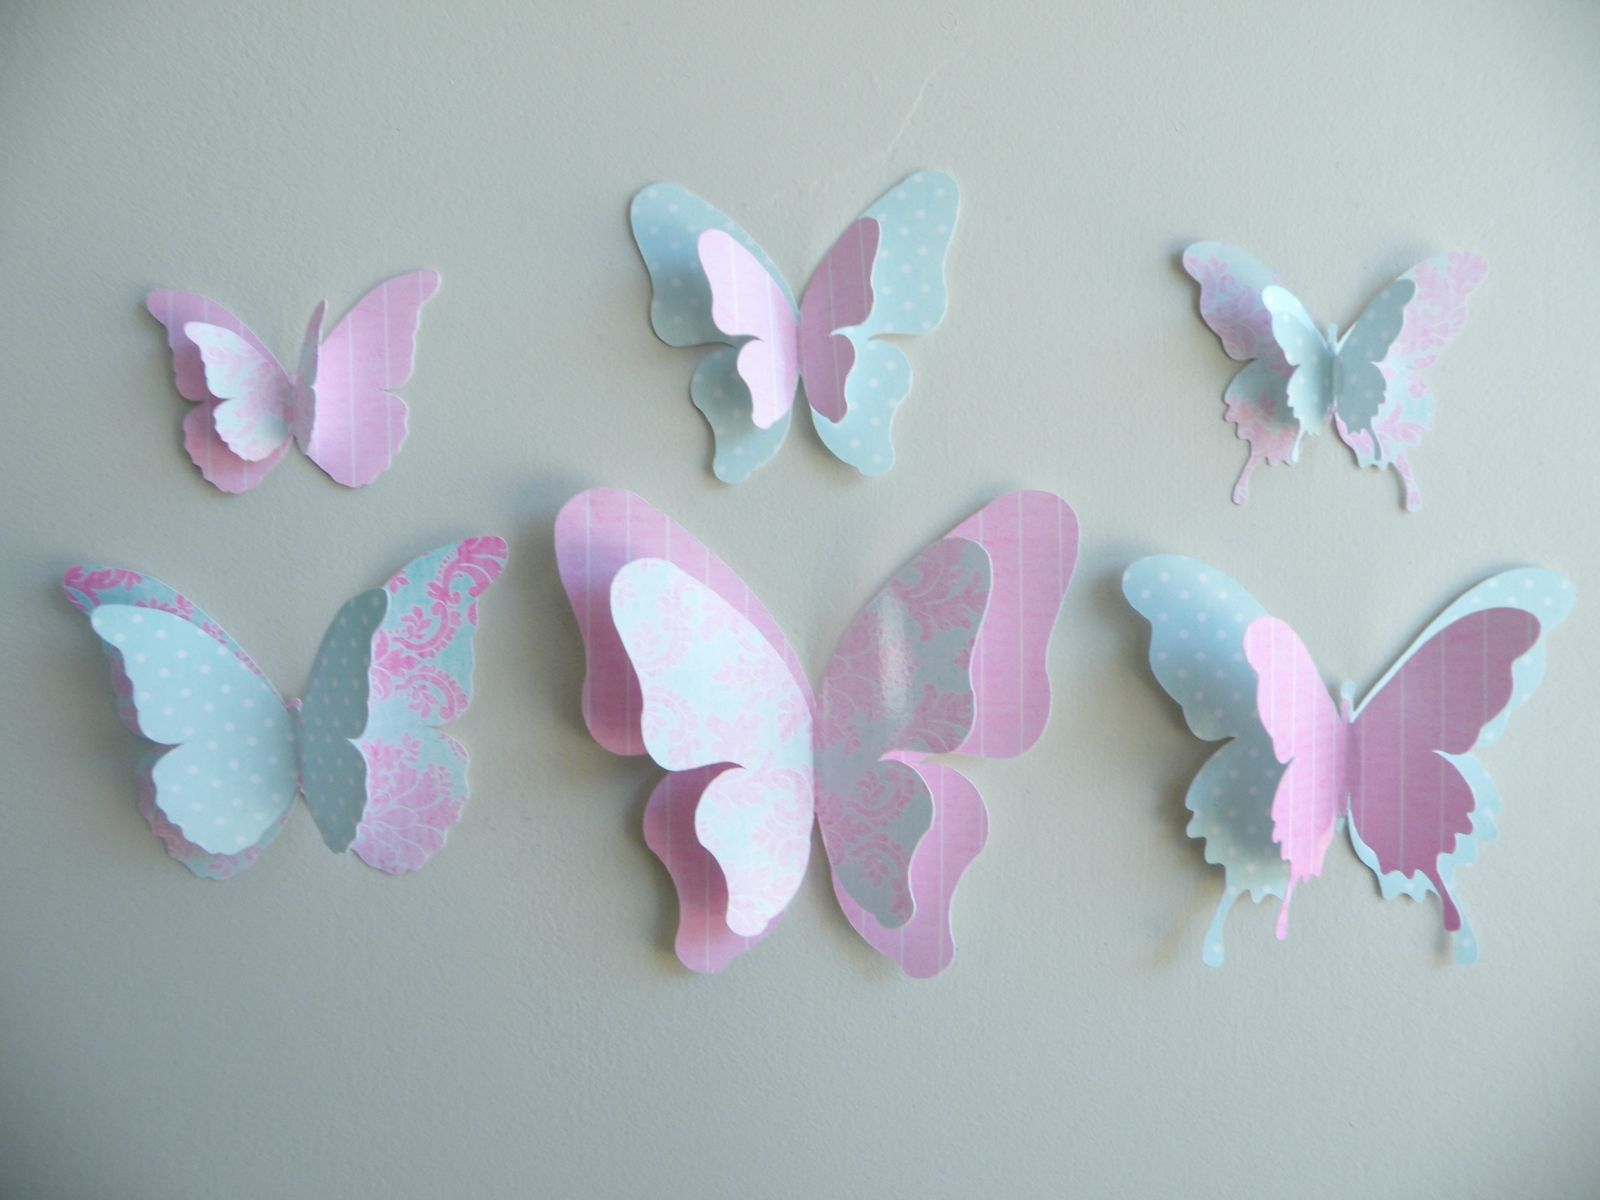 butterfly decorations ○ Wedding decorations ○